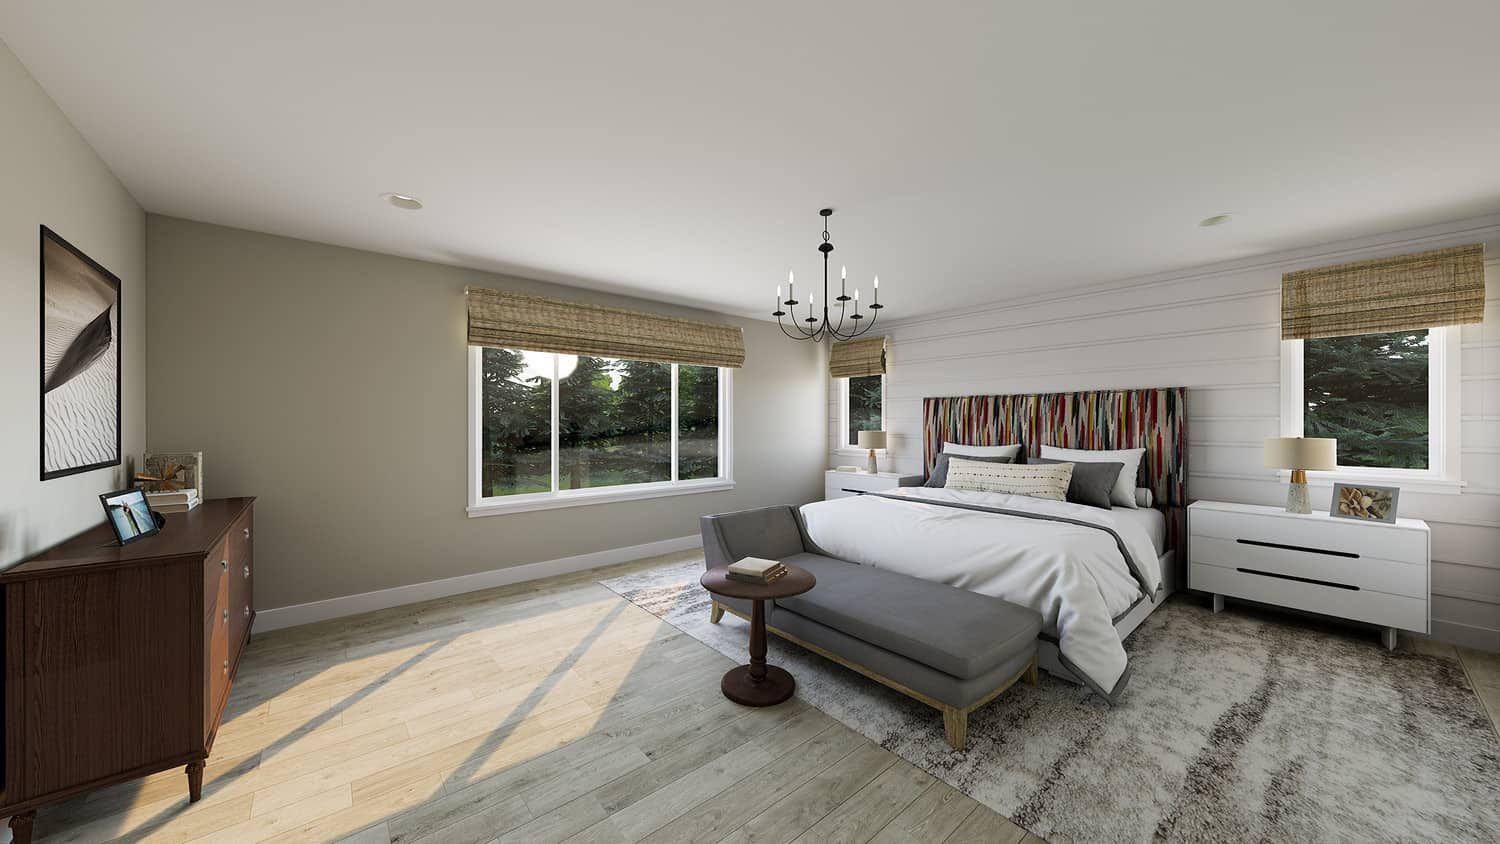 Bedroom featured in the Plan A-300 By Tri Pointe Homes in Bremerton, WA